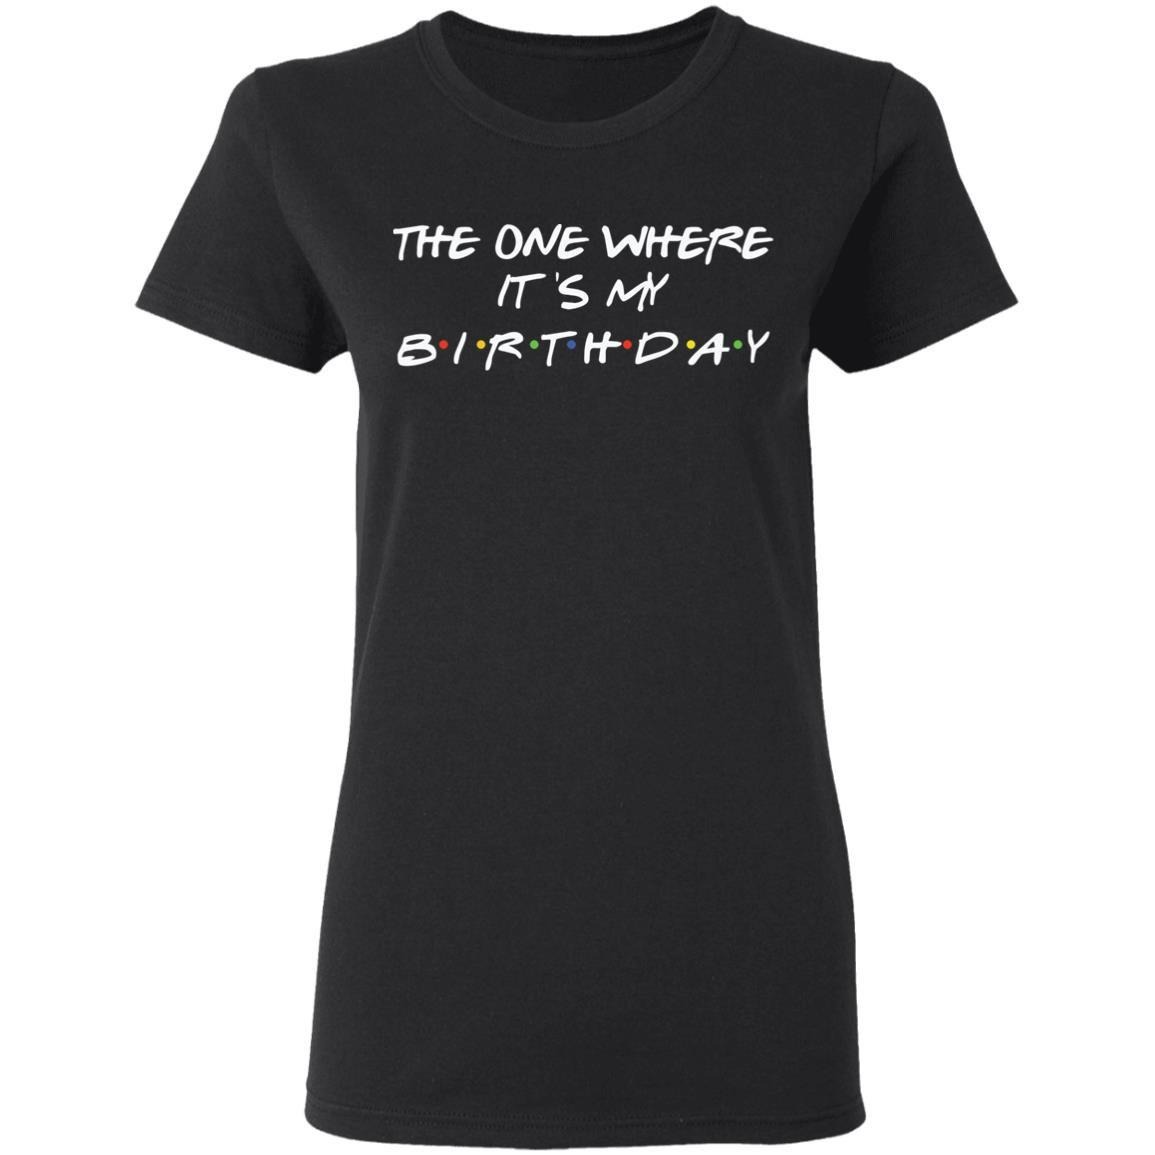 The One Where It's My Birthday Shirt